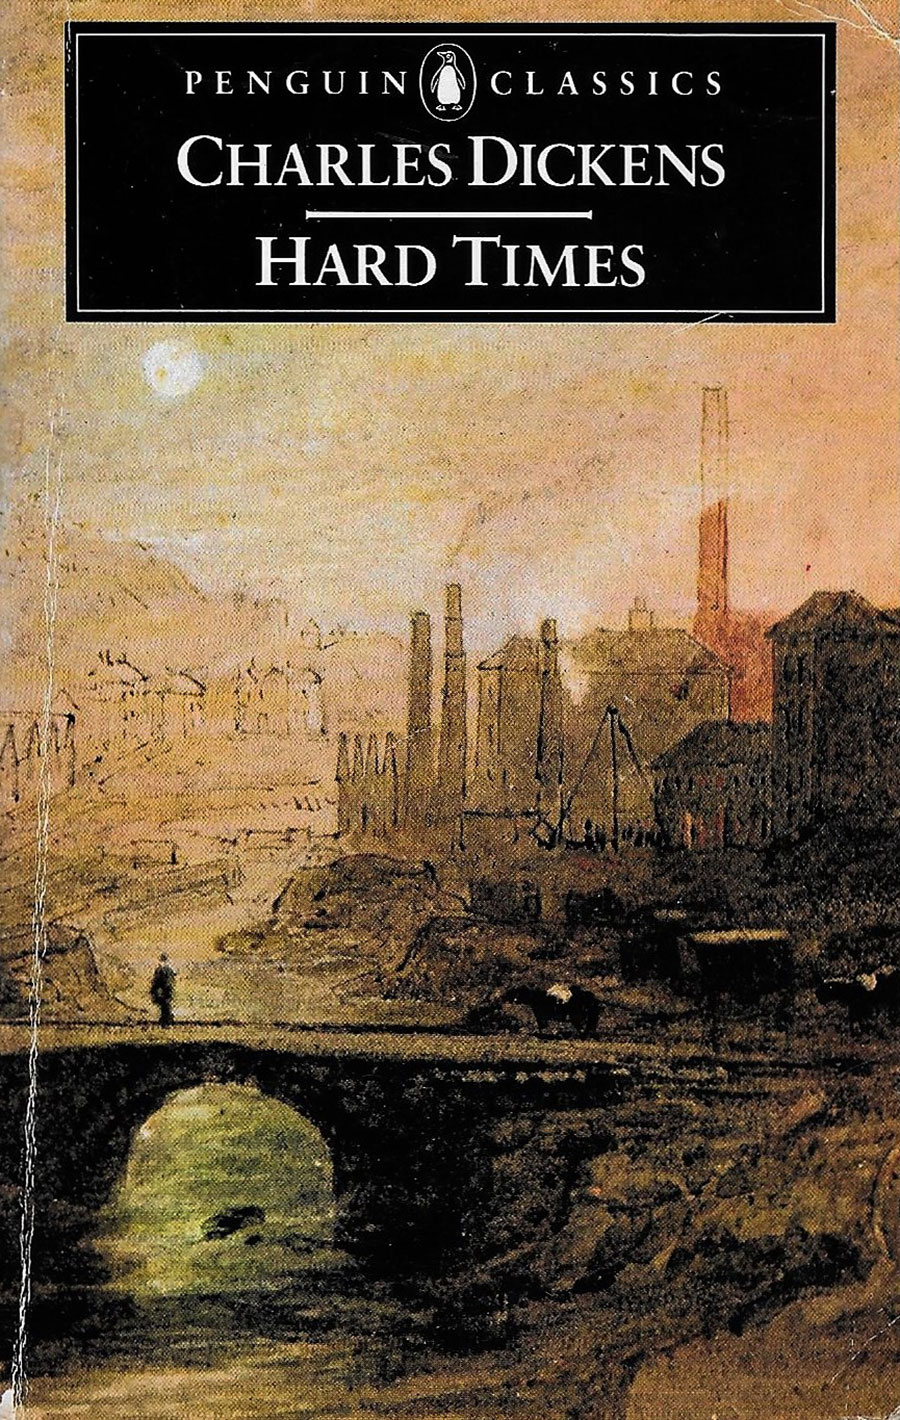 critical essay on hard times by charles dickens Hard times, by charles dickens evaluates and highlights the issues of the times- social and political the story is set in an imaginary town in england called coketown, which is home to mills and factories.